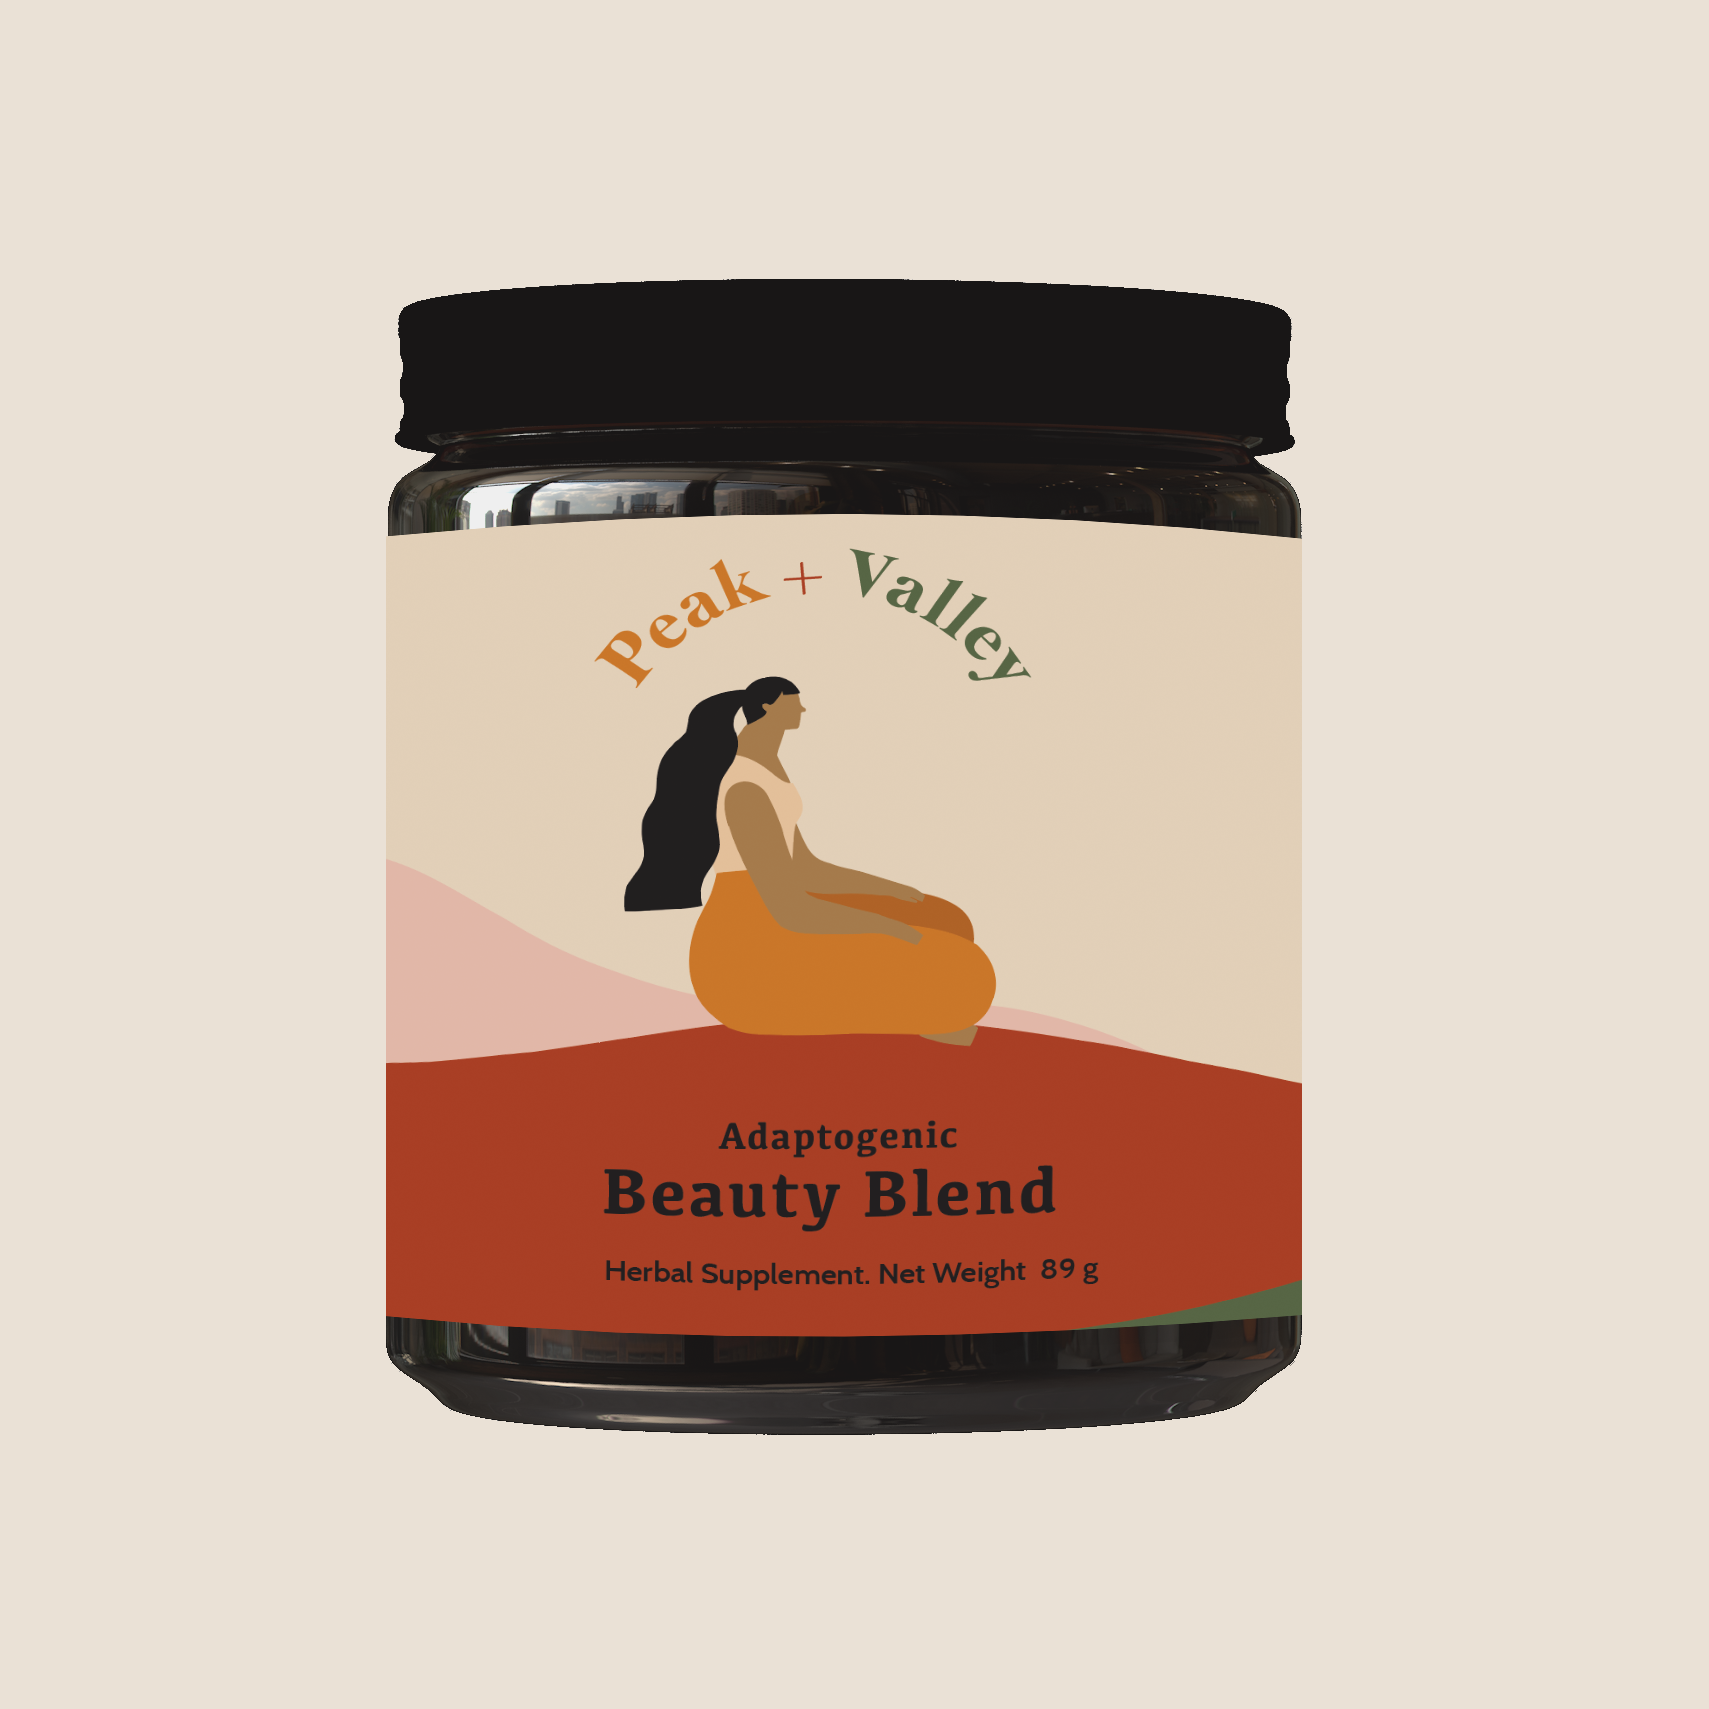 Peak and Valley Beauty Blend